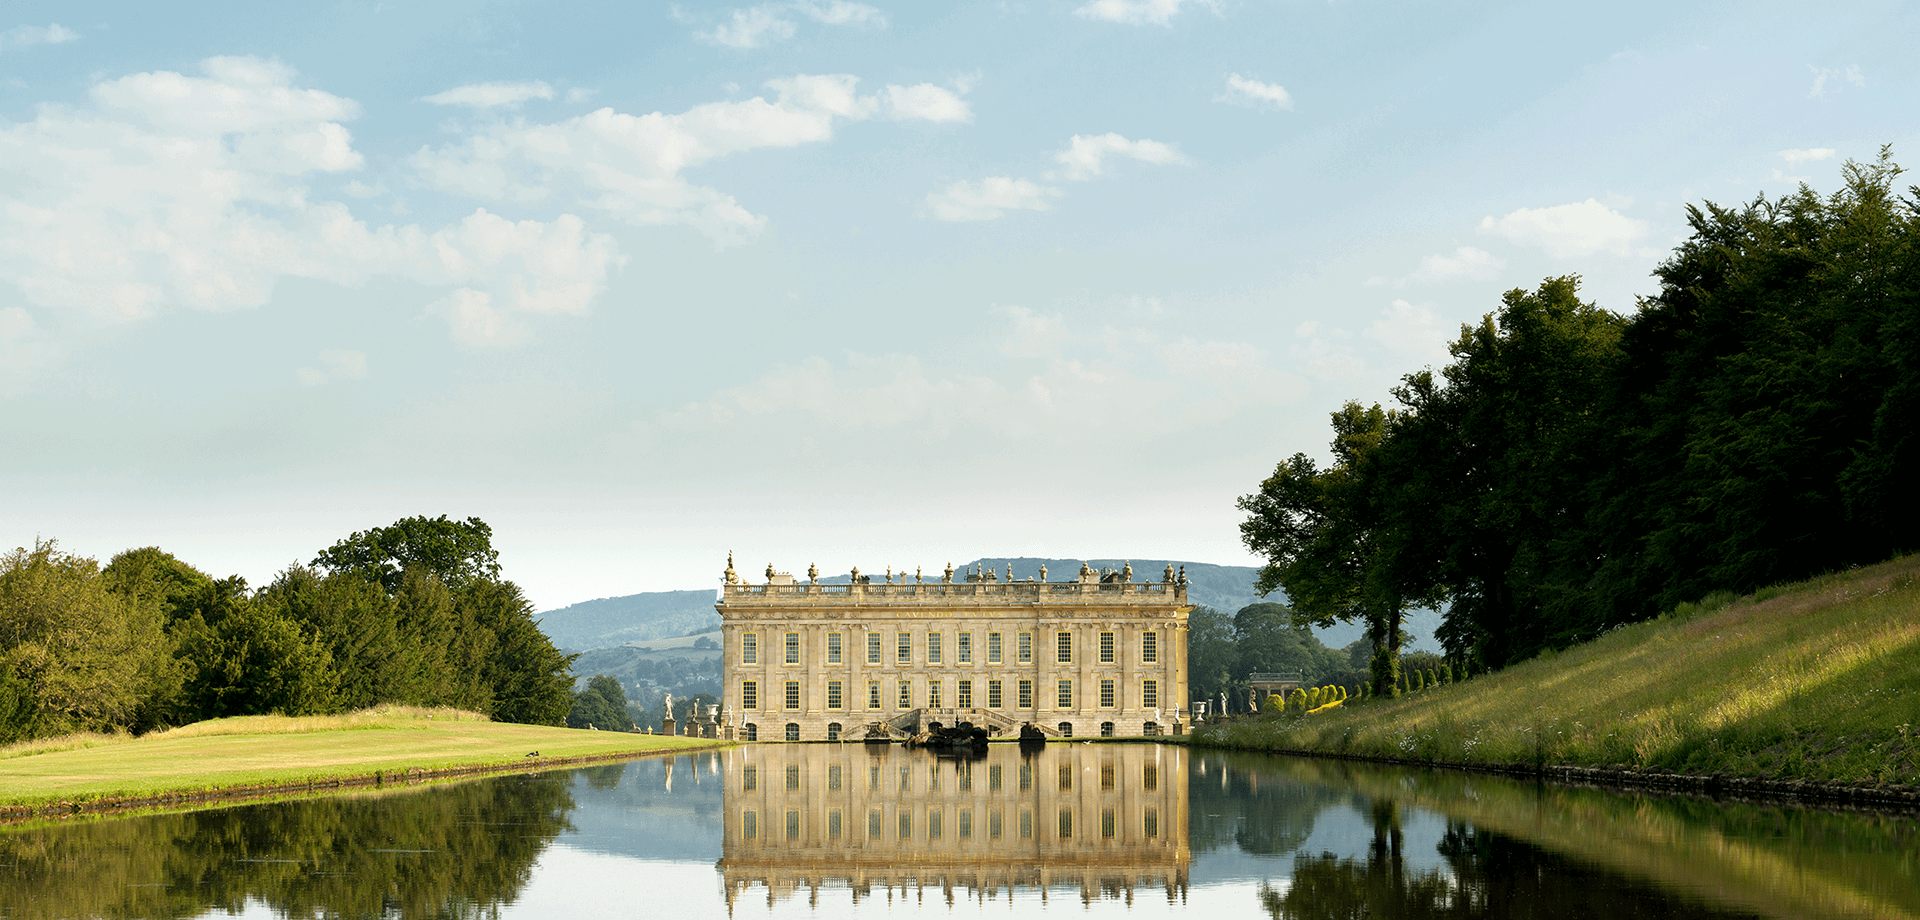 Chatsworth Stars in BBC's Major Christmas Drama 'Death Comes to Pemberley'